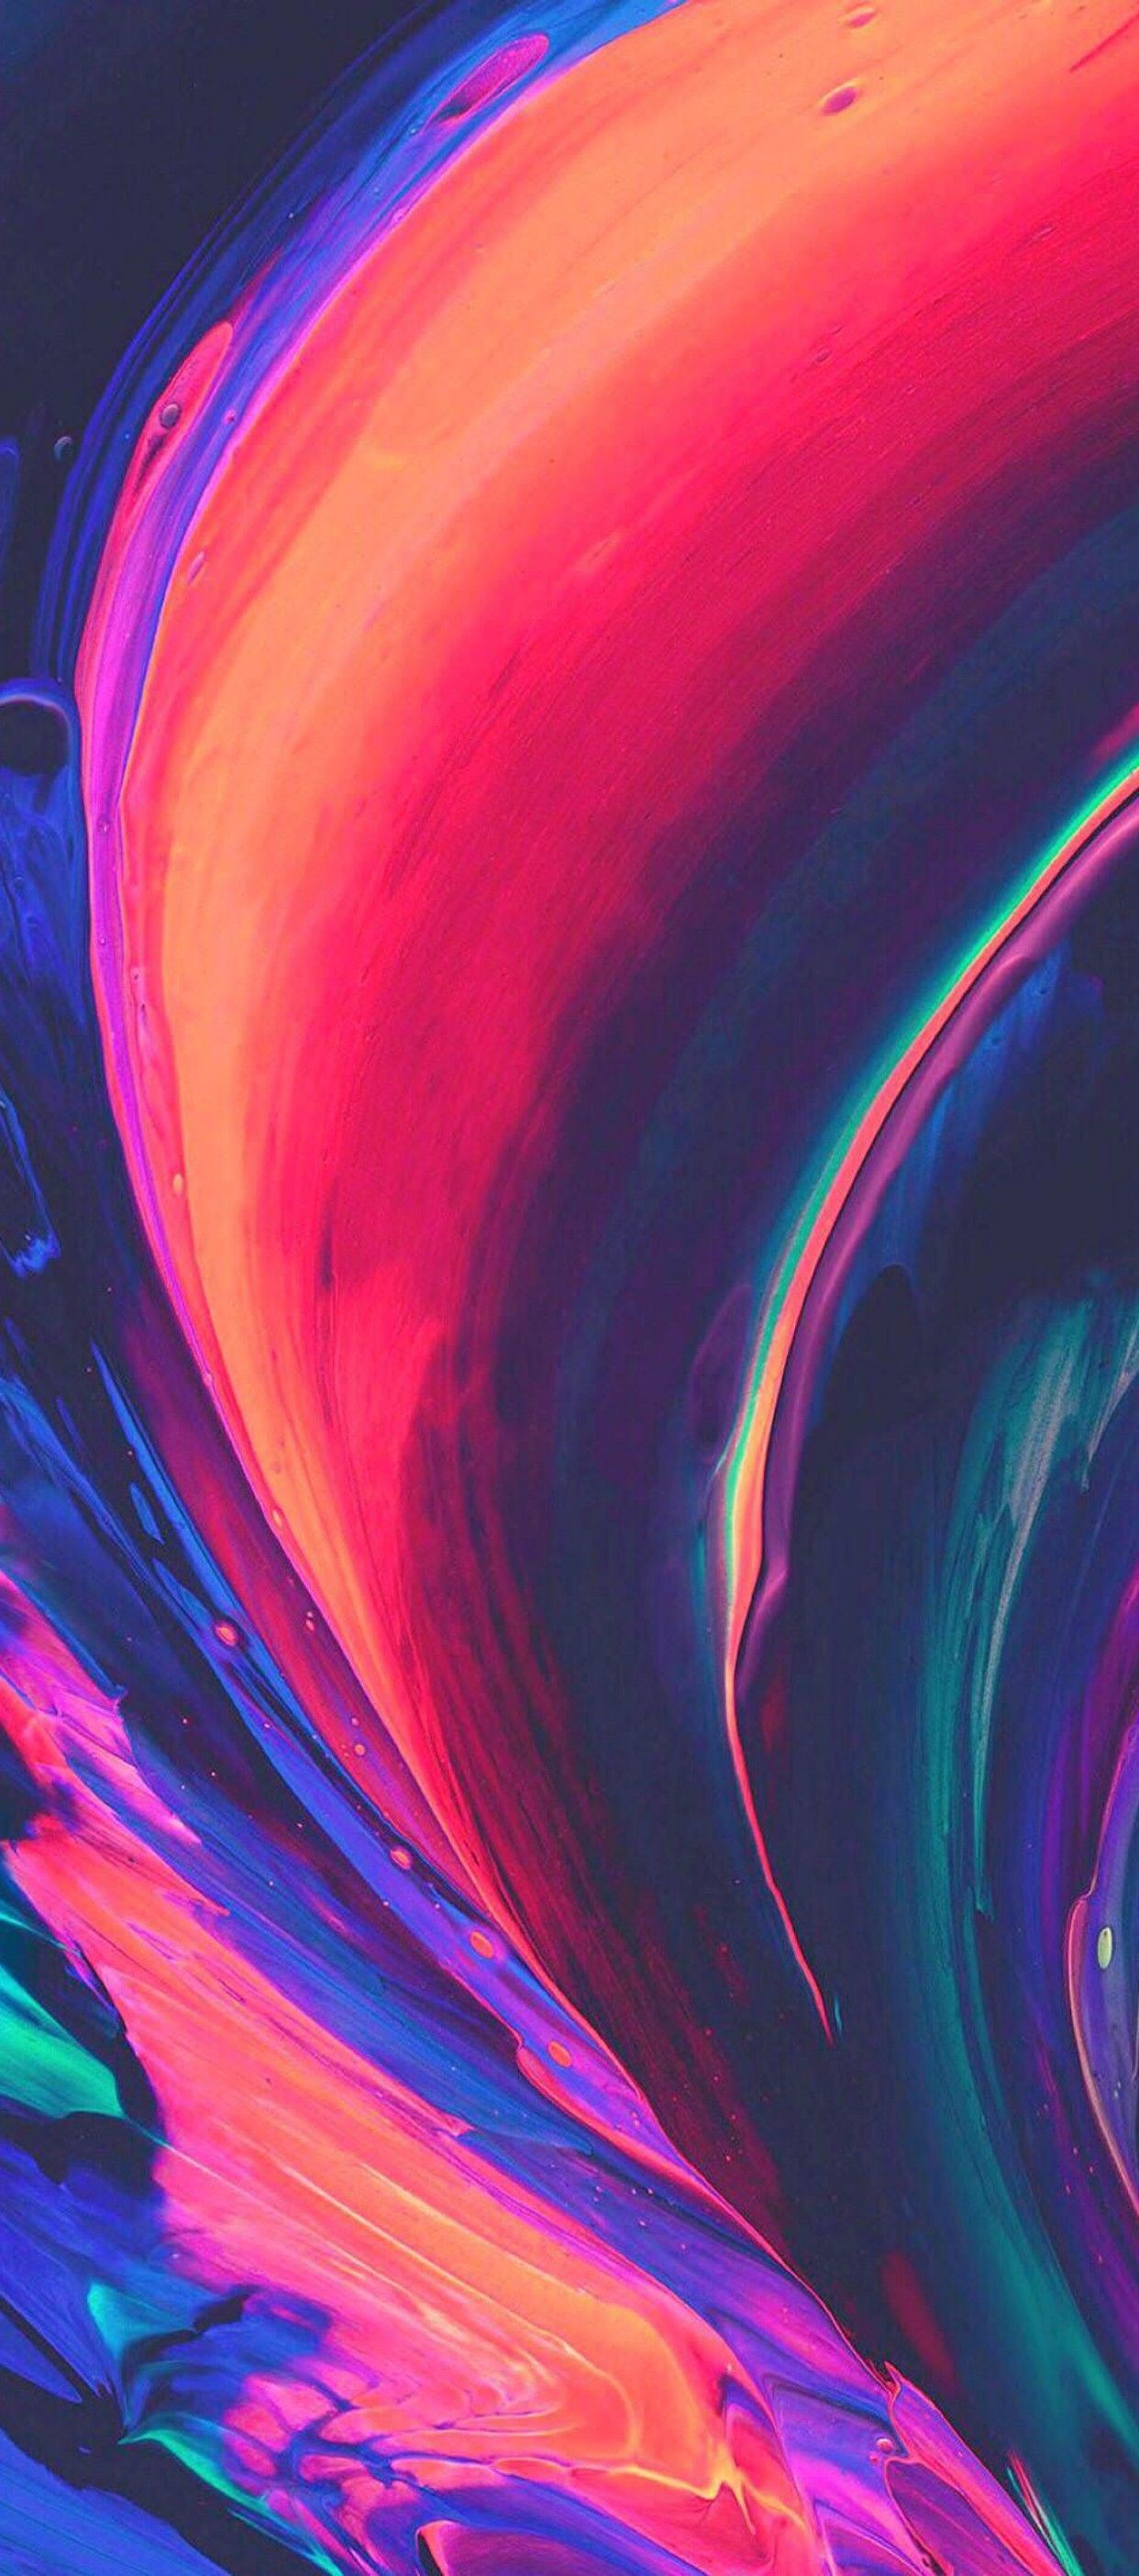 iOS 11, iPhone X, purple, blue, clean, simple, abstract ...